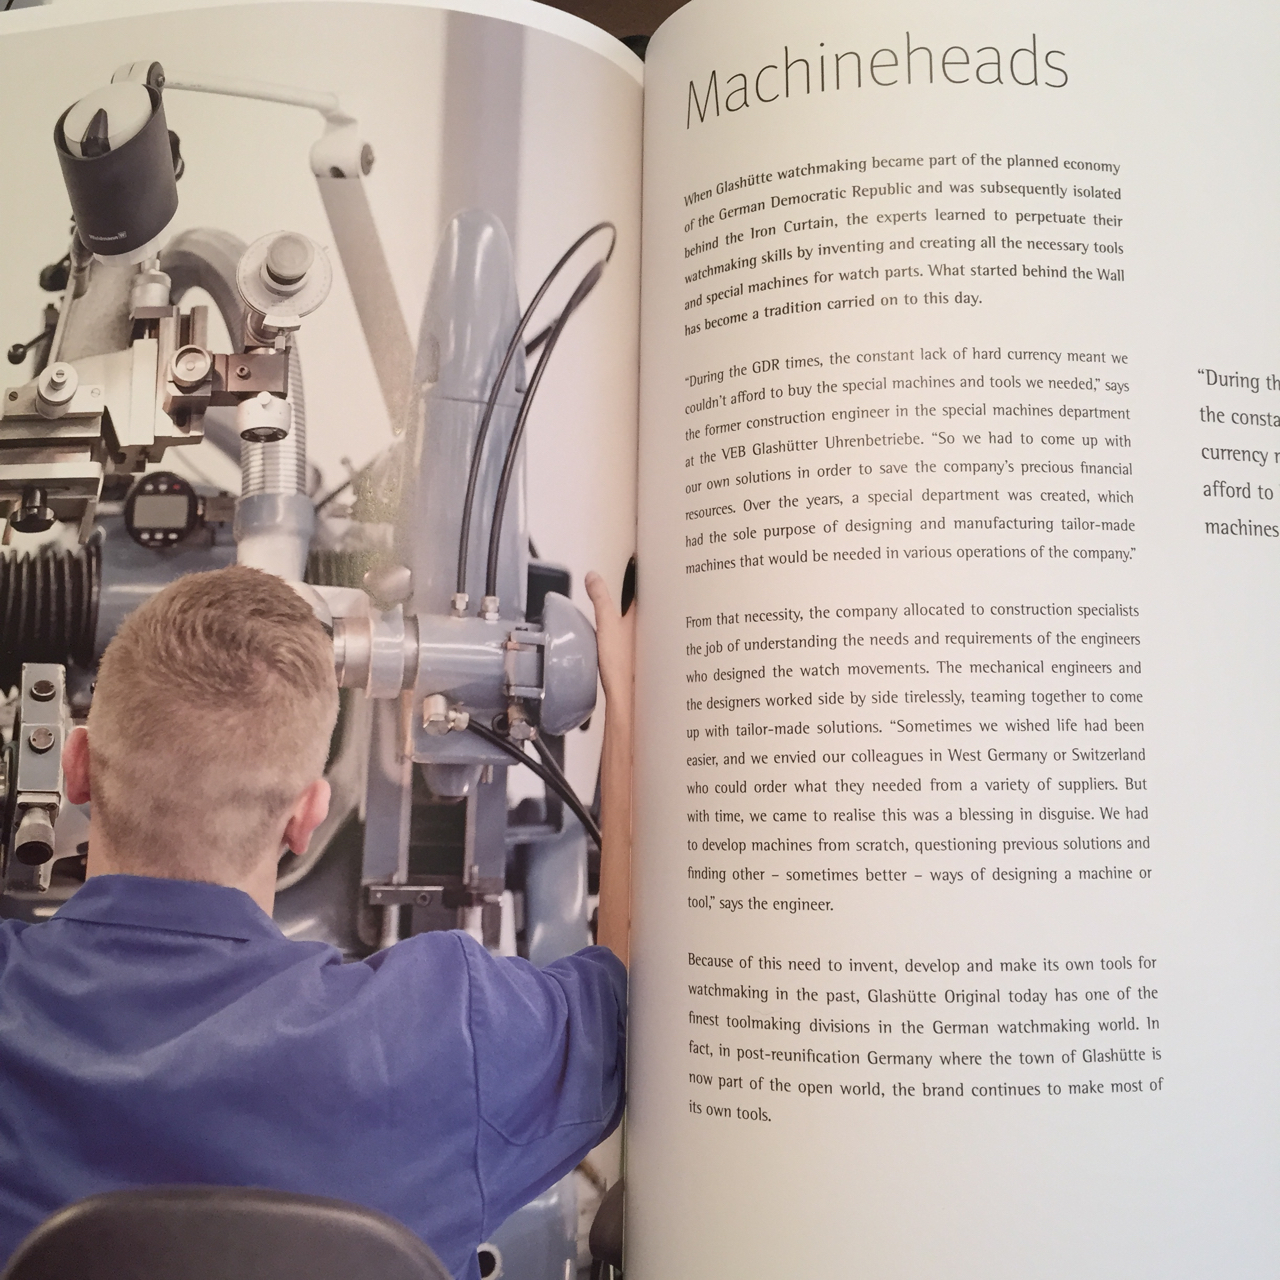 Roberta Naas covered the chapter entitled Machine Heads, that explains how the brand created the machines to enable it to move forward in watchmaking